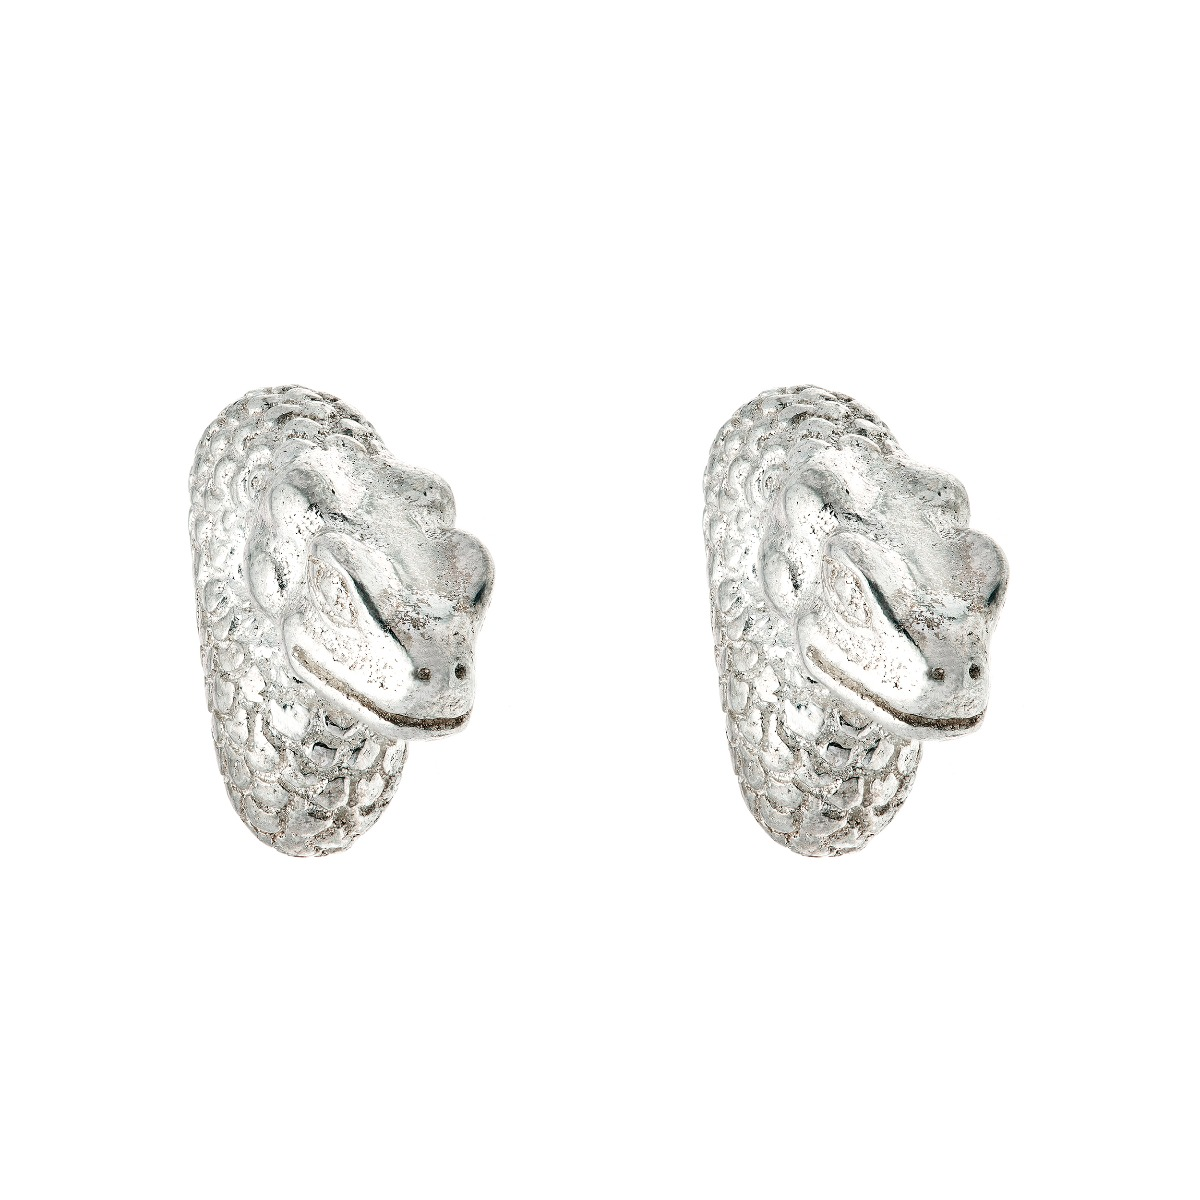 Chinese zodiac stud earrings (snake)